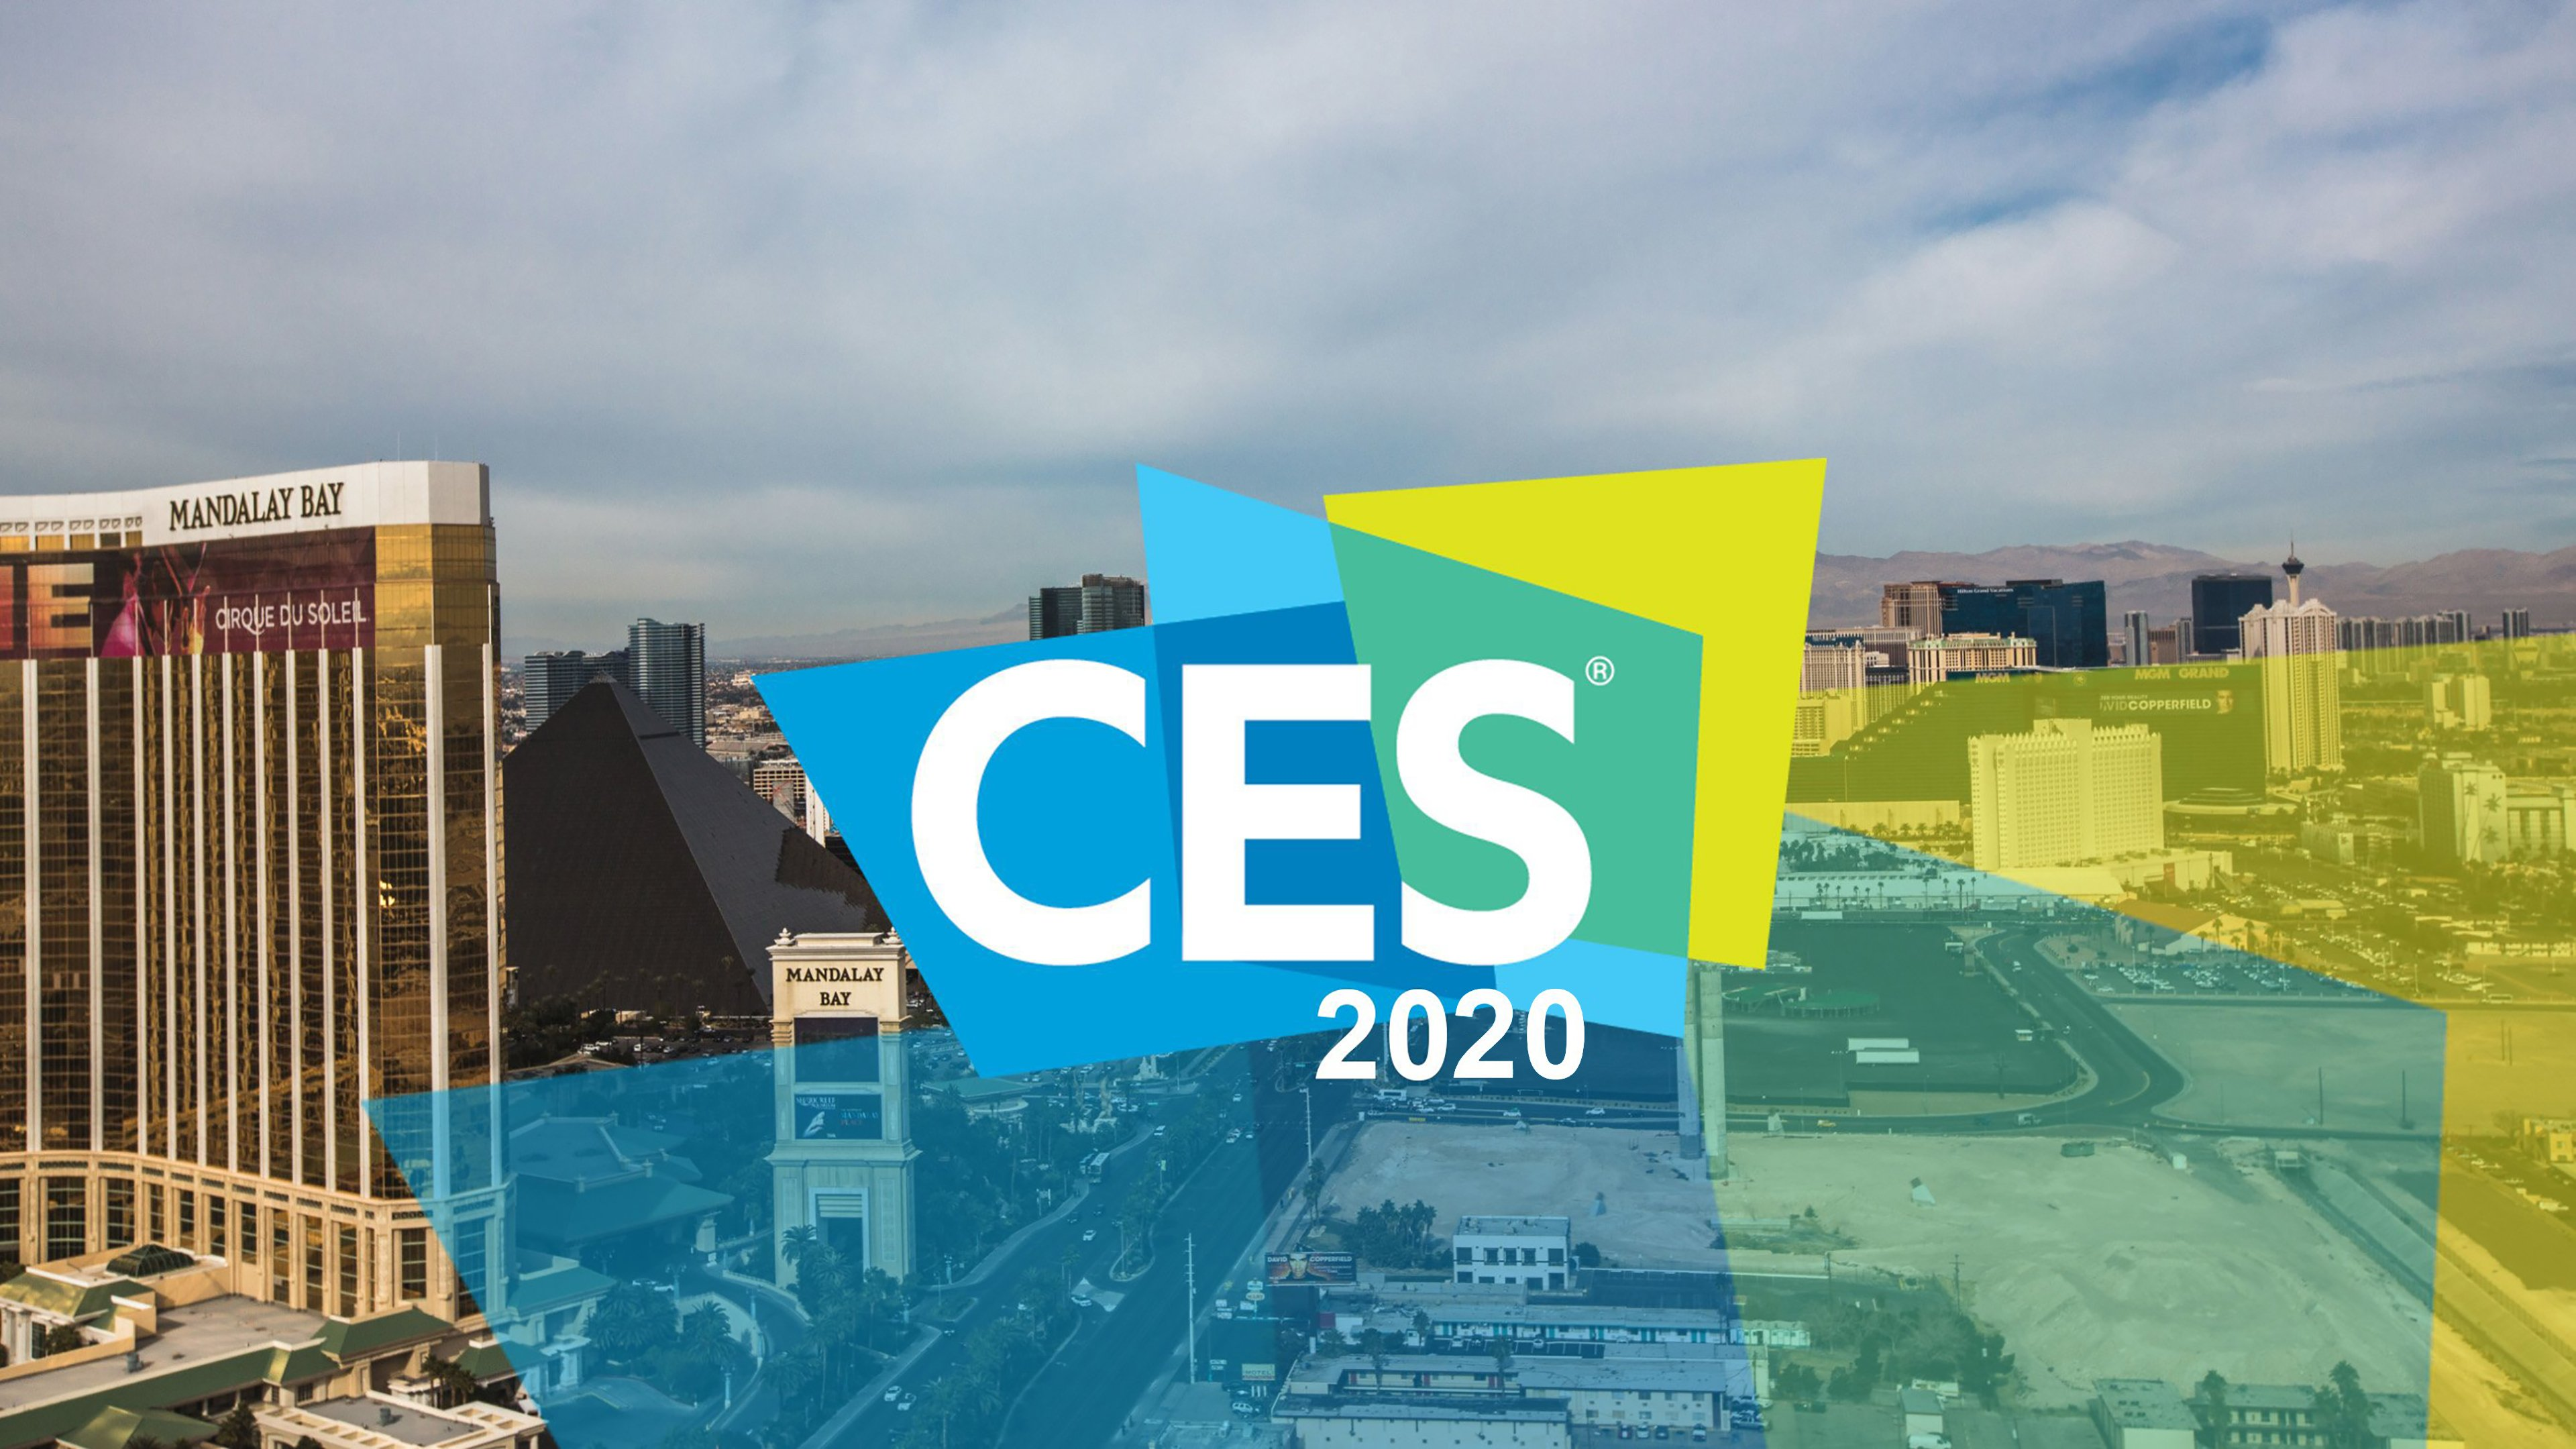 Best Of Ces 2020.What To Expect From Ces 2020 In Las Vegas Next Month